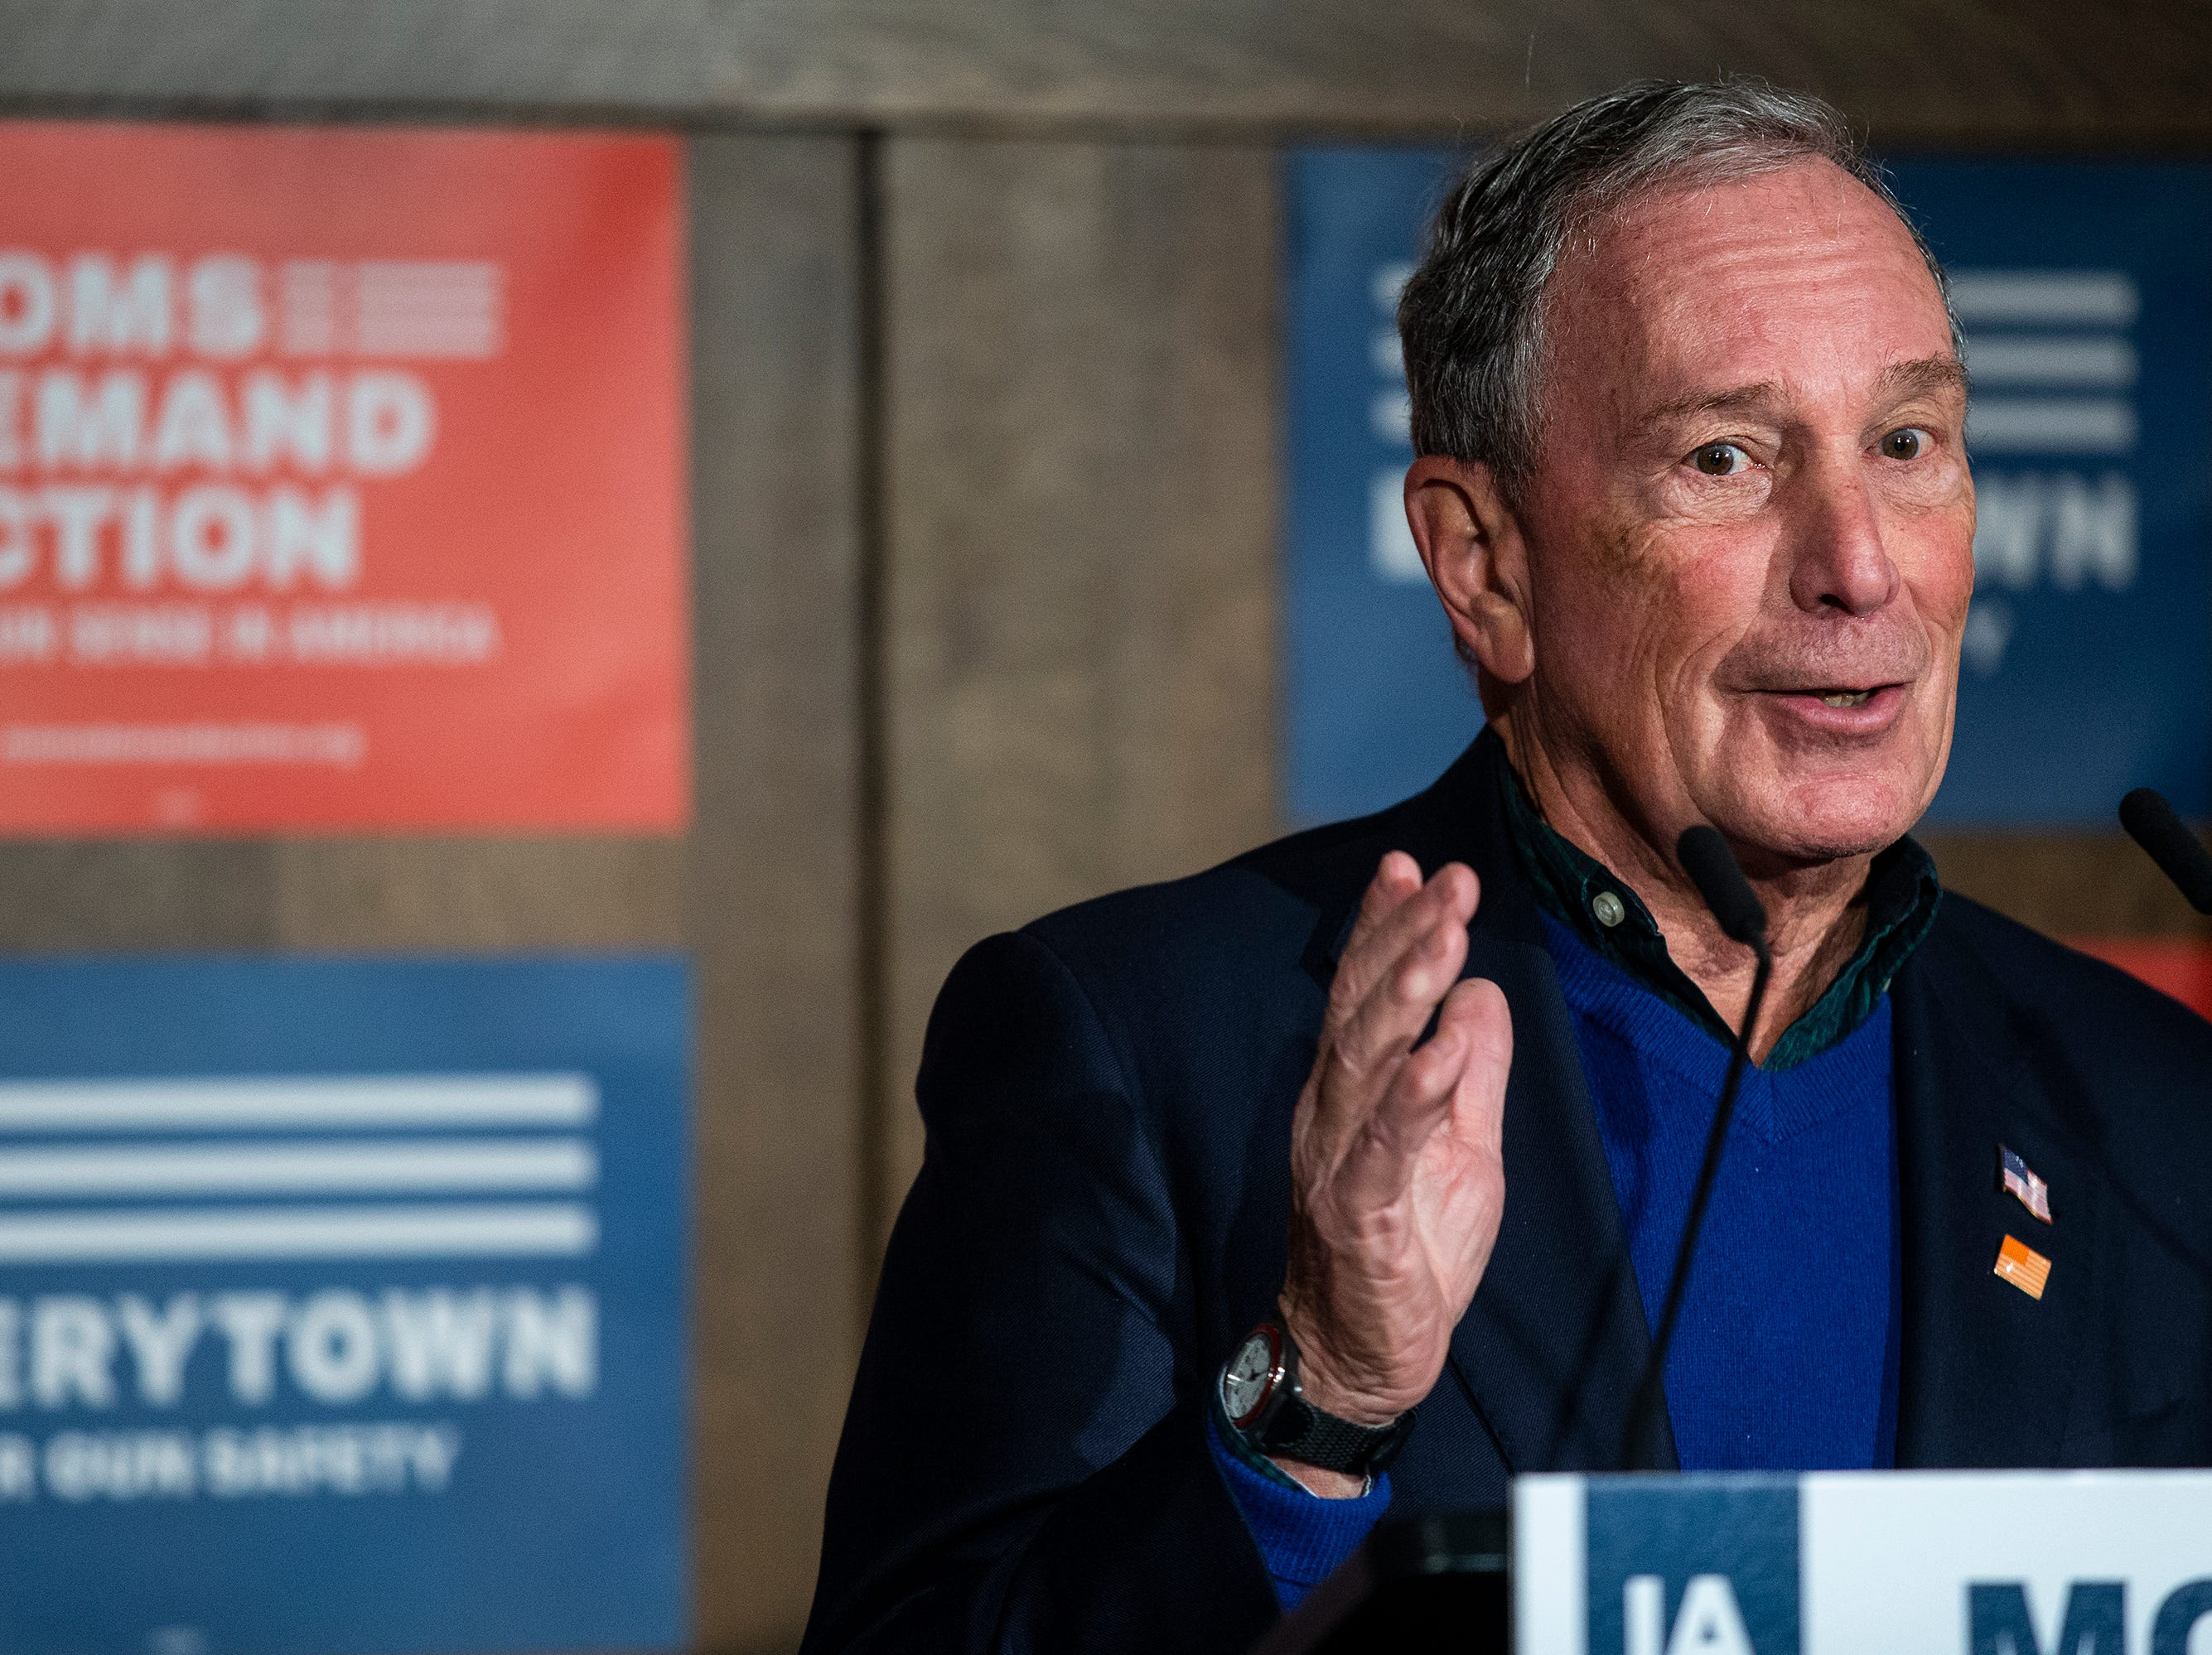 Former New York City Mayor Michael Bloomberg speaks to the crowd gathered at an Iowa Moms Demand Action member meeting on Tuesday, Dec. 4, 2018, at the Iowa Taproom in Des Moines.